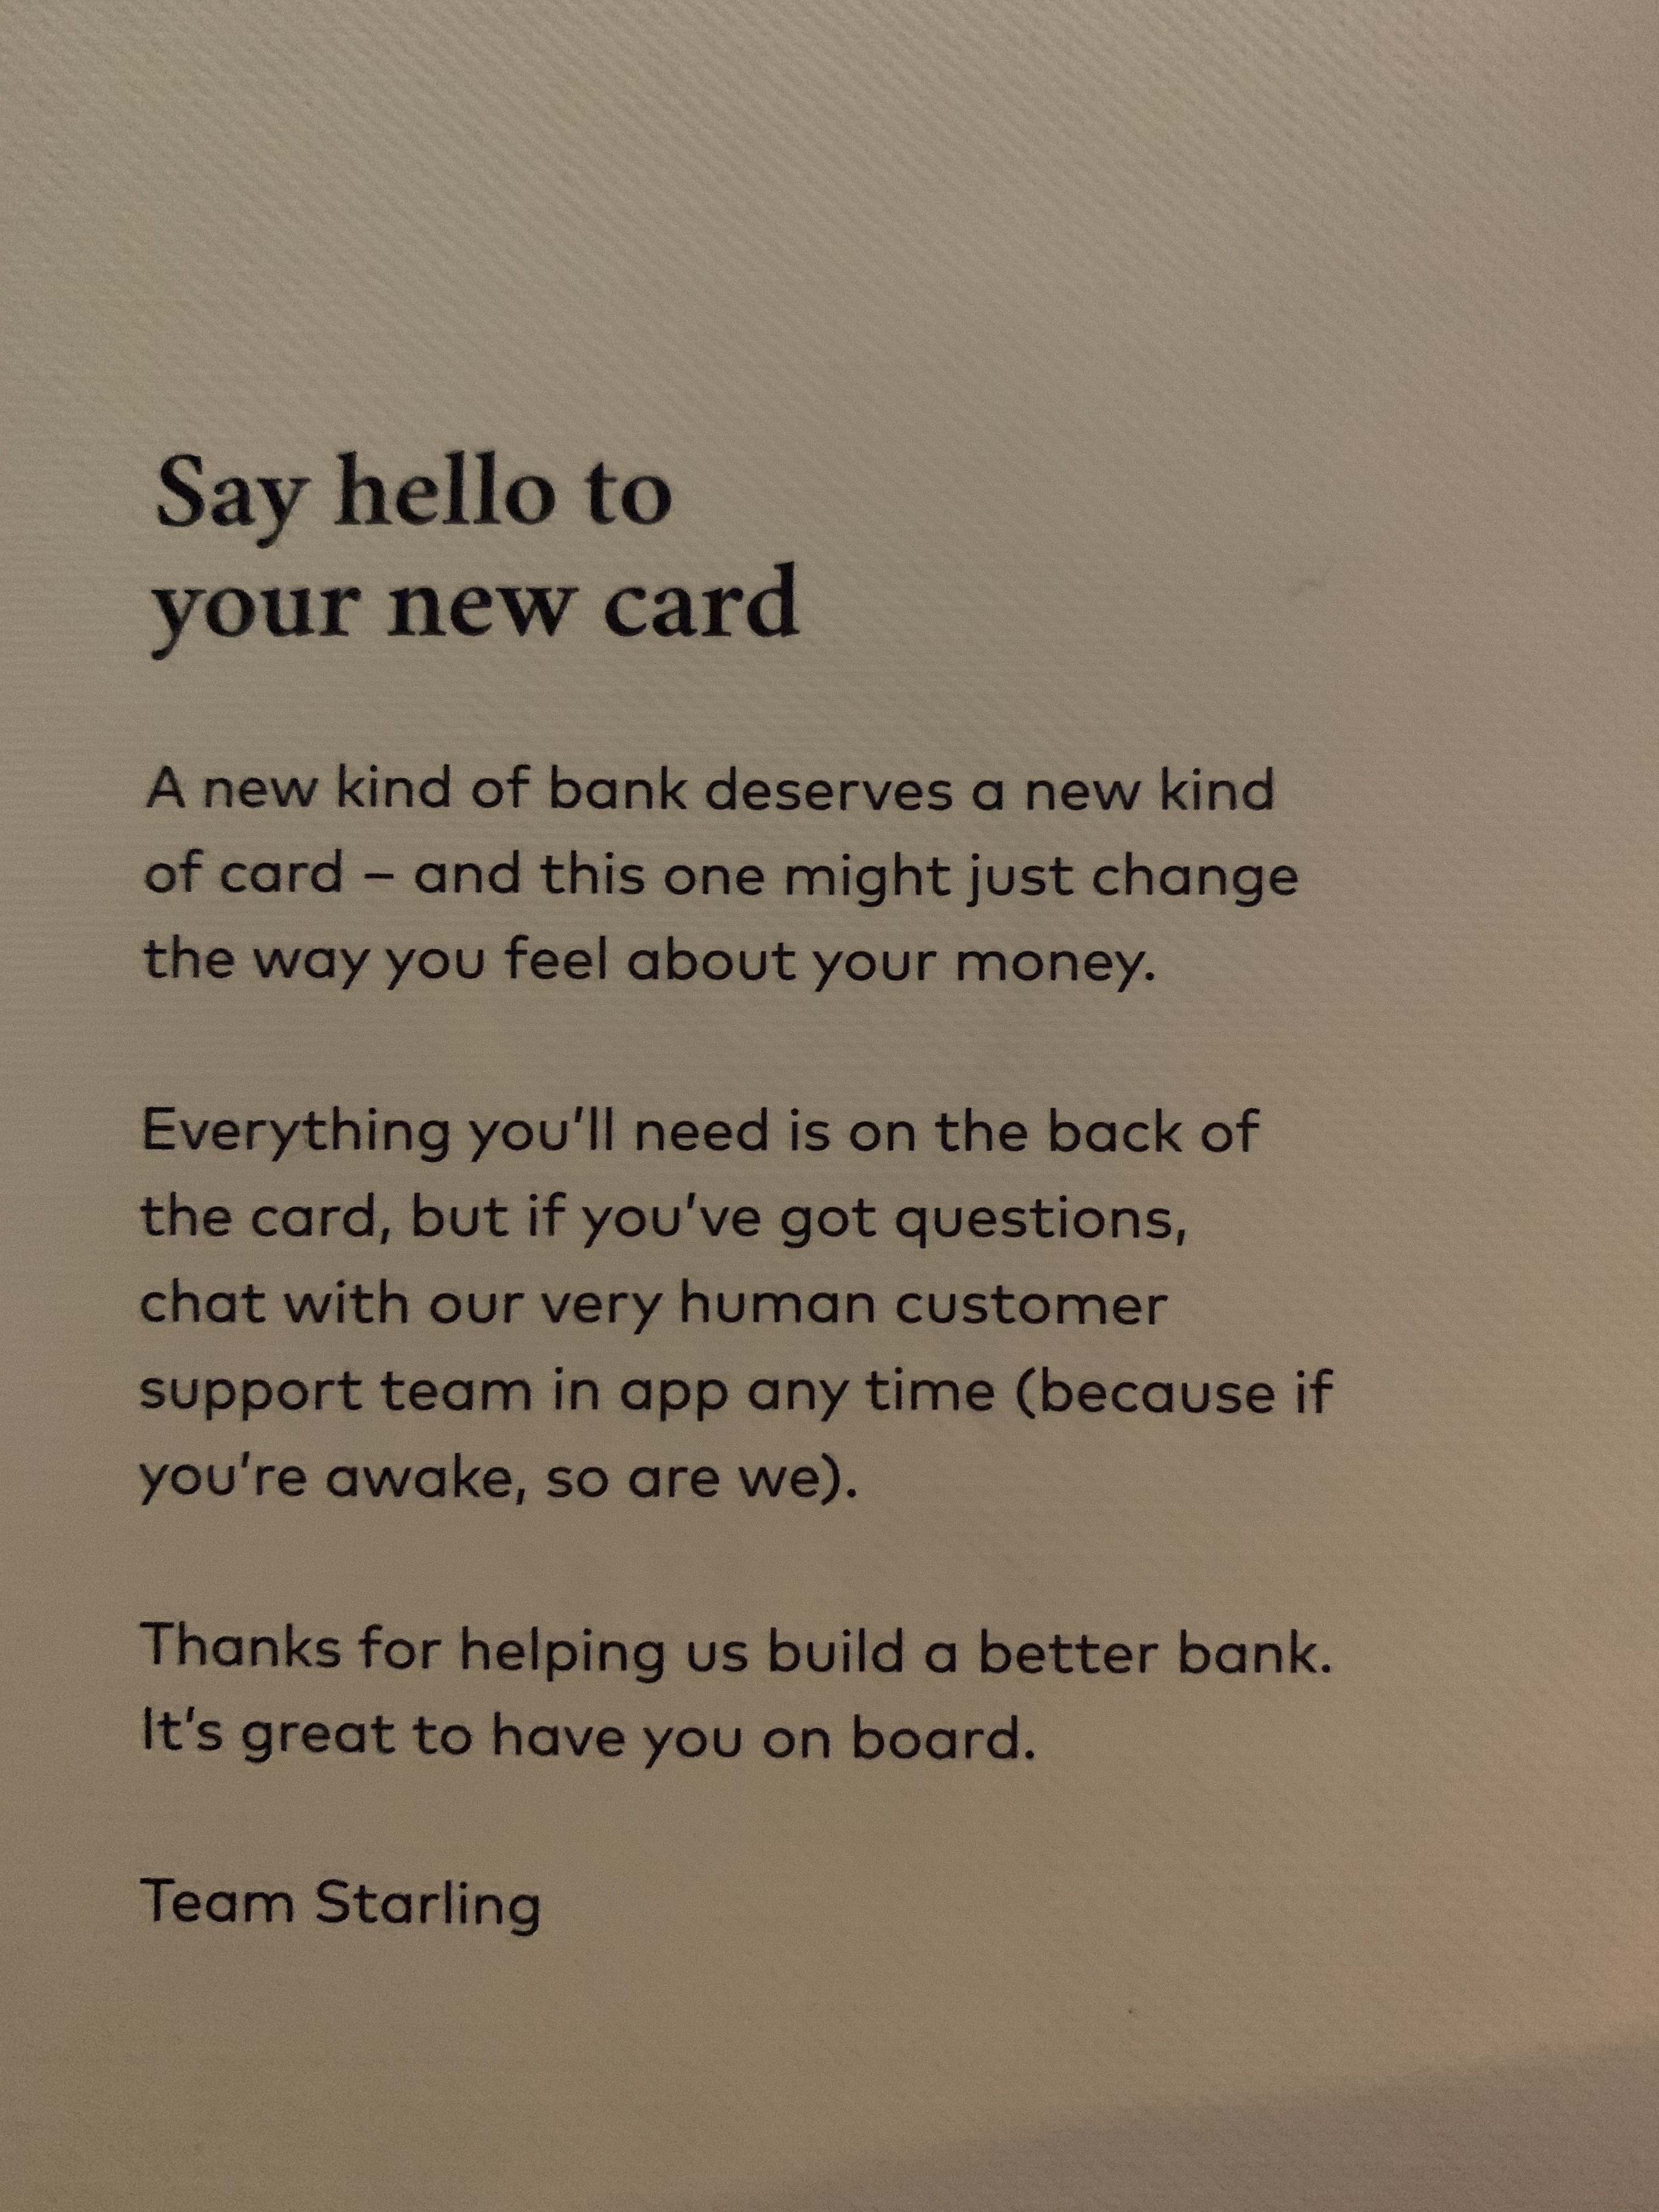 This is a welcome card from Starling which comes with your bank card—it reassures you that they are around whenever you are